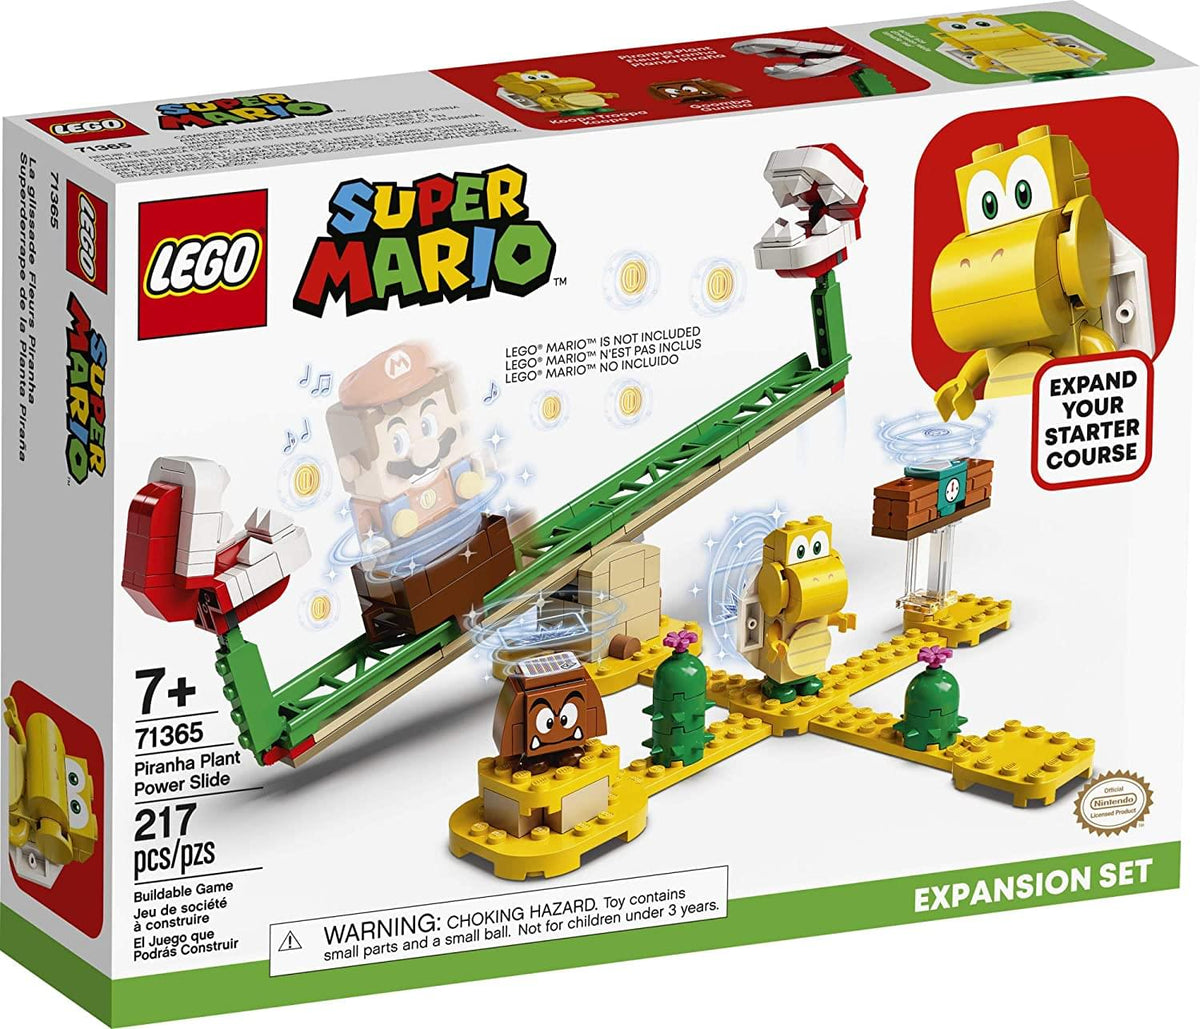 LEGO Super Mario Piranha Plant Power Slide 71365 | 217 Piece Expansion Set